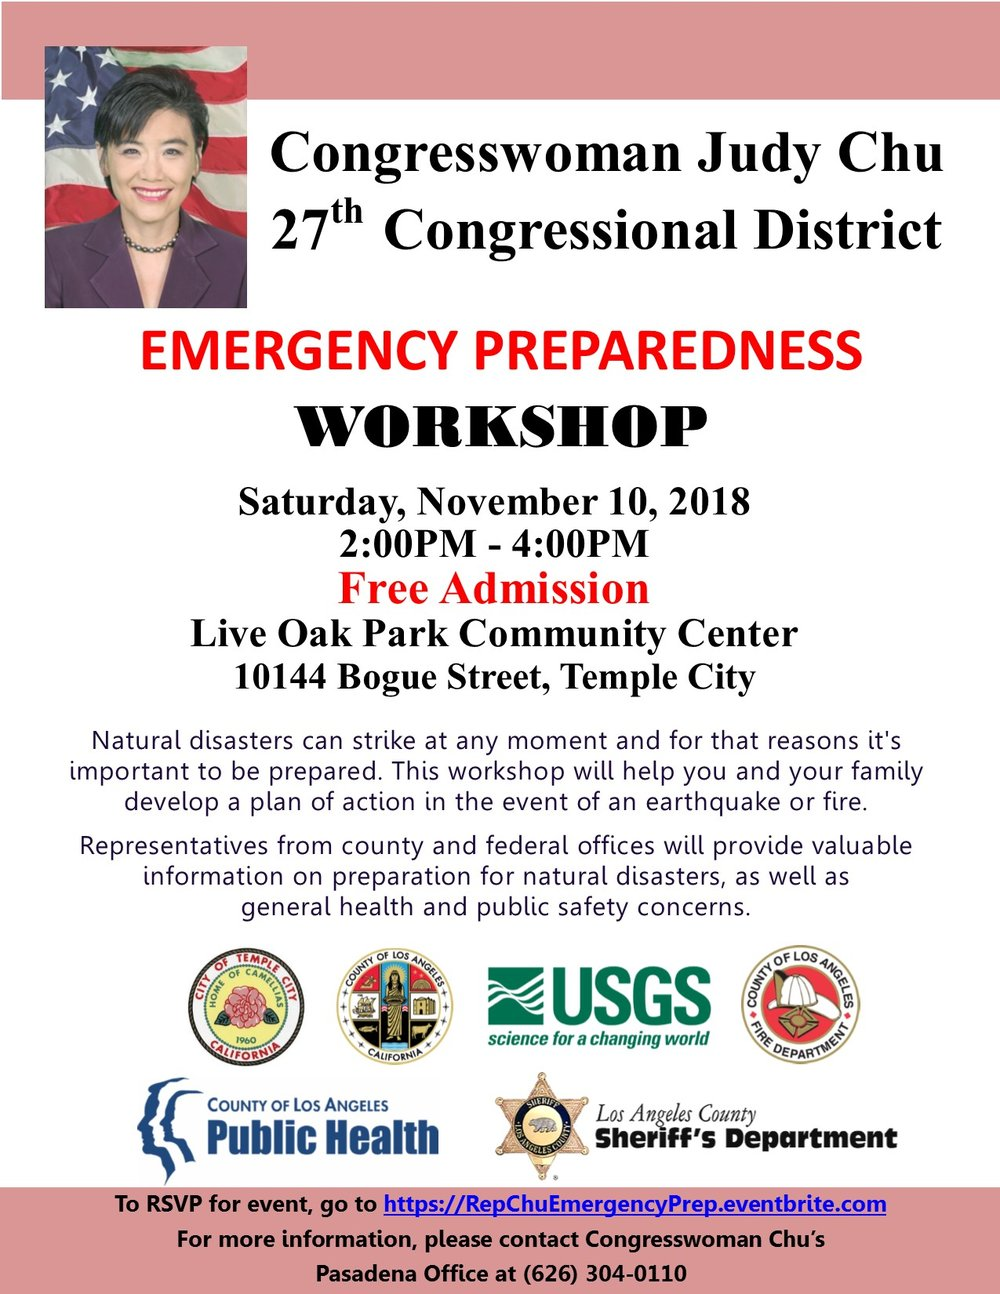 congresswoman judy chu emergency preparedness workshop - Novermber 10th, 2018